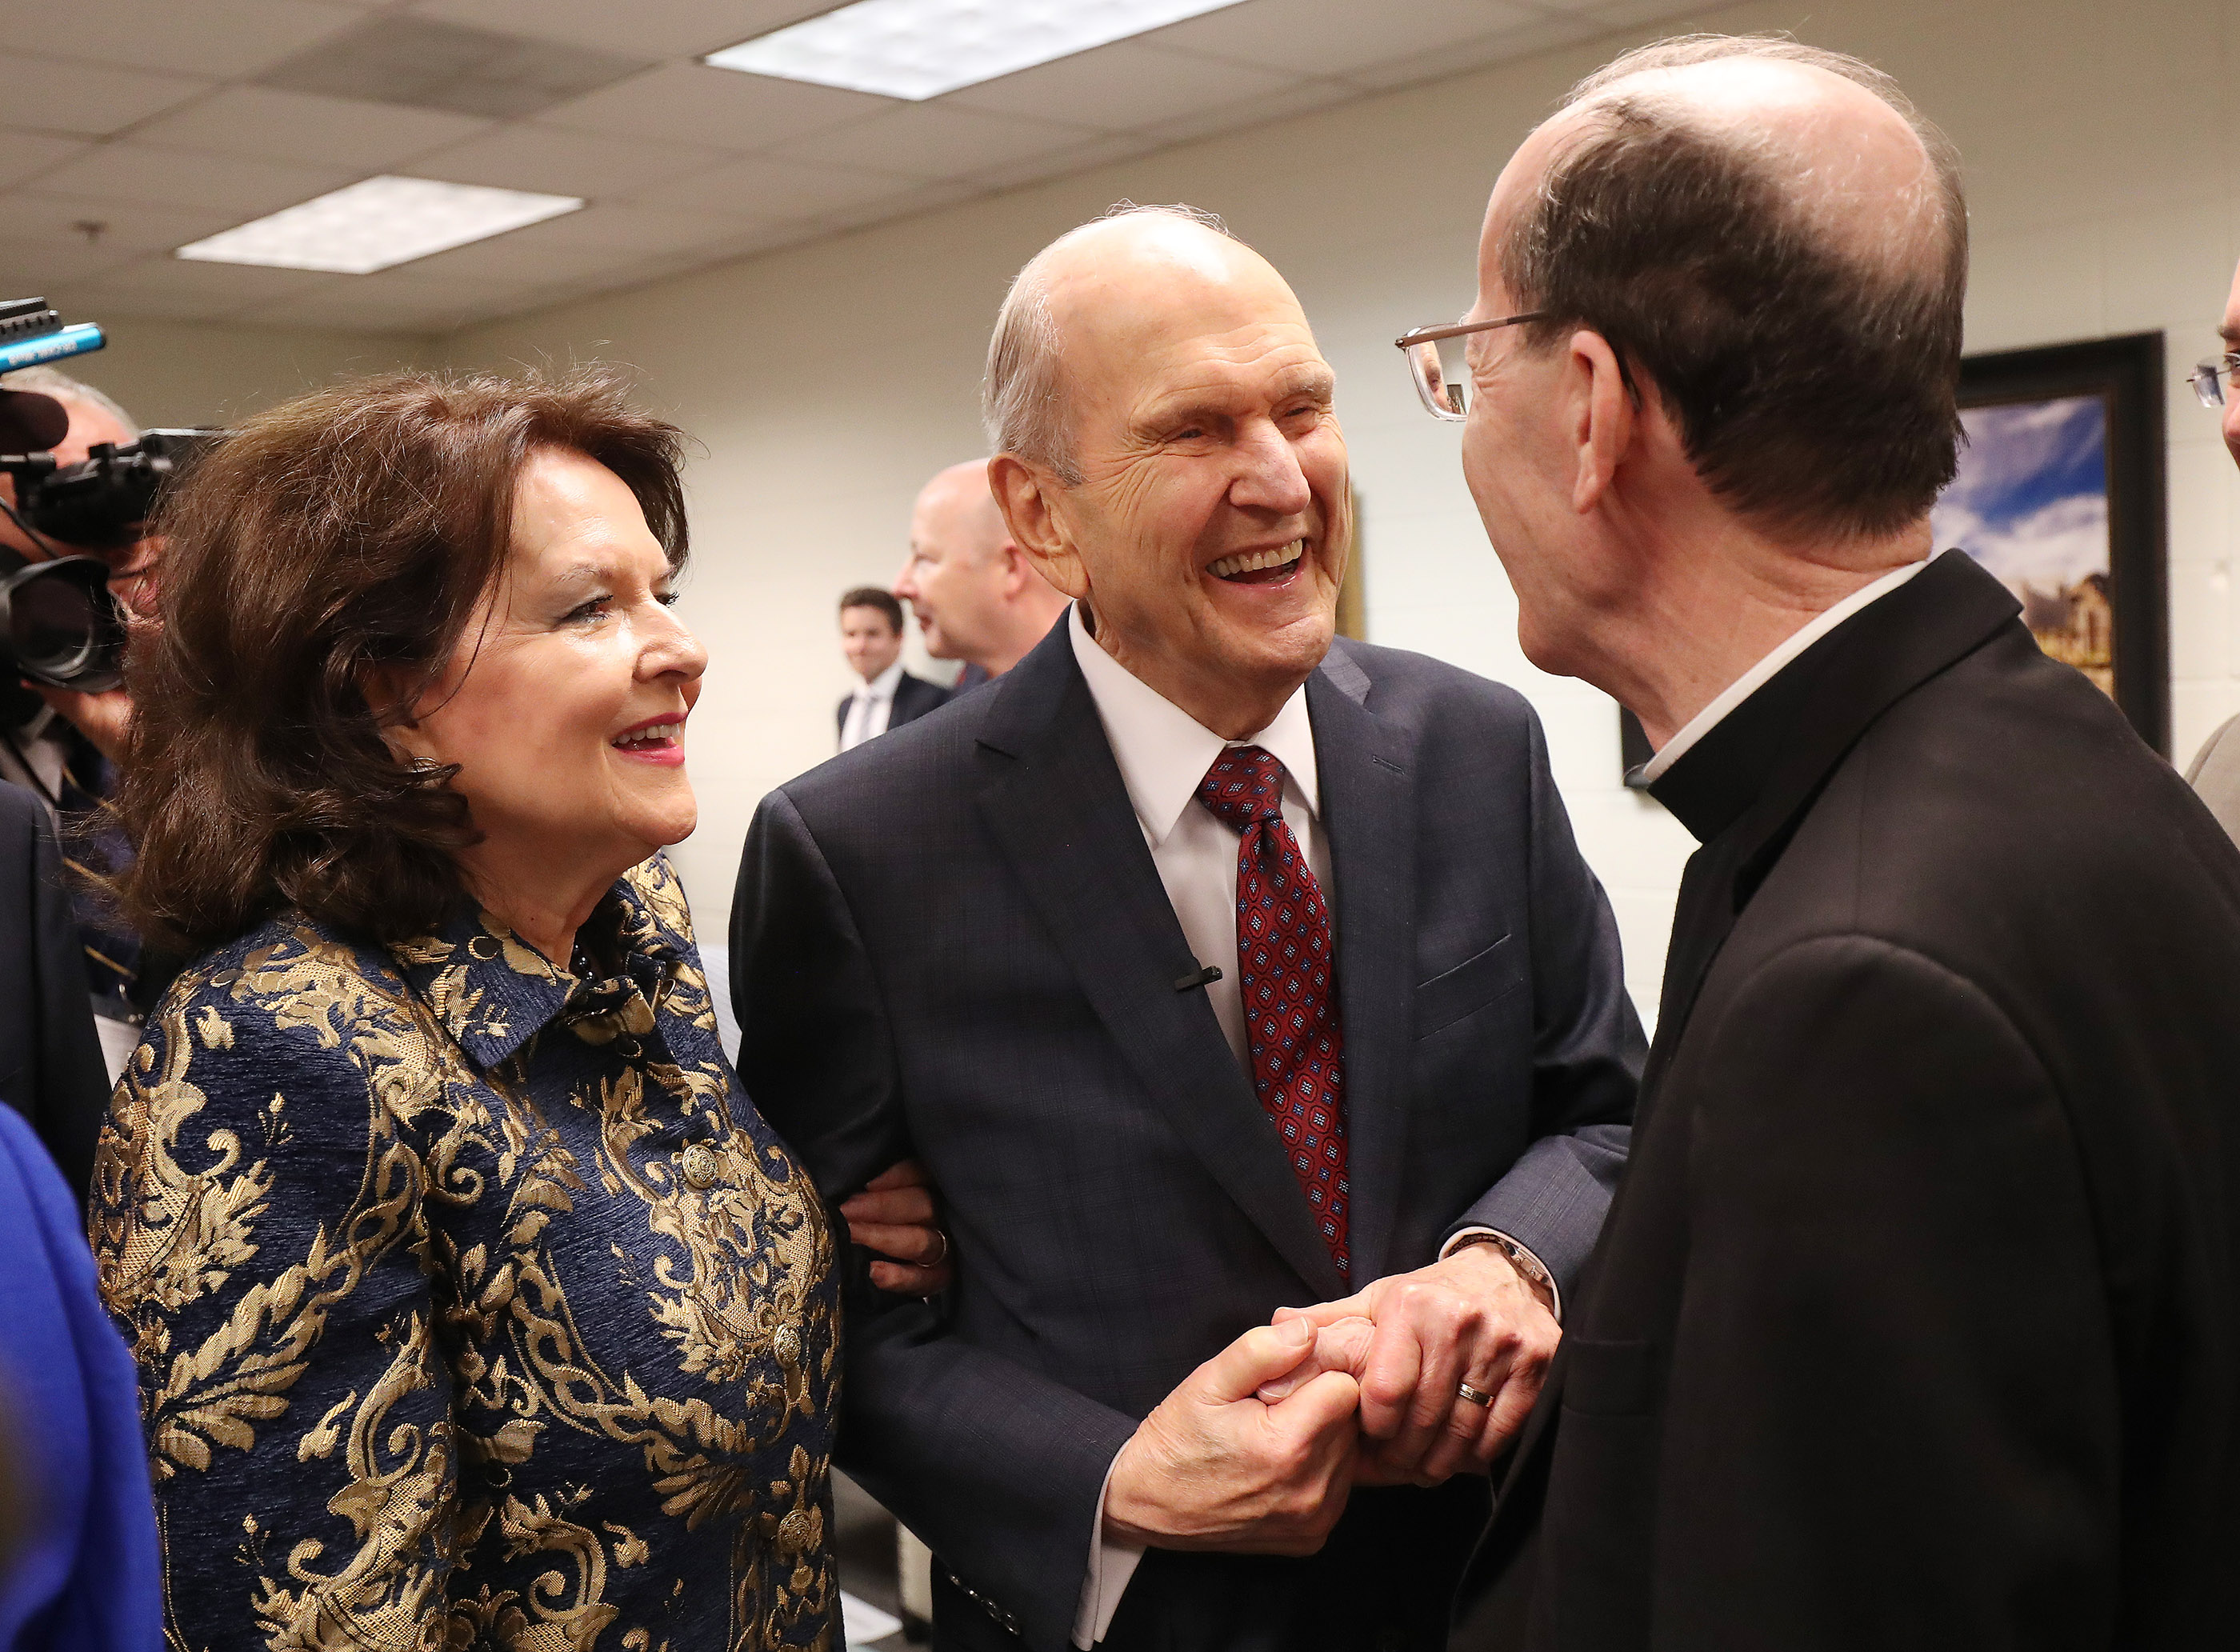 President Russell M. Nelson of The Church of Jesus Christ of Latter-day Saints and his wife, Sister Wendy Nelson, meet the Most Reverend Thomas J. Olmsted, Bishop of the Catholic Dioceses of Phoenix, prior to speaking in Phoenix on Sunday, Feb. 10, 2019.